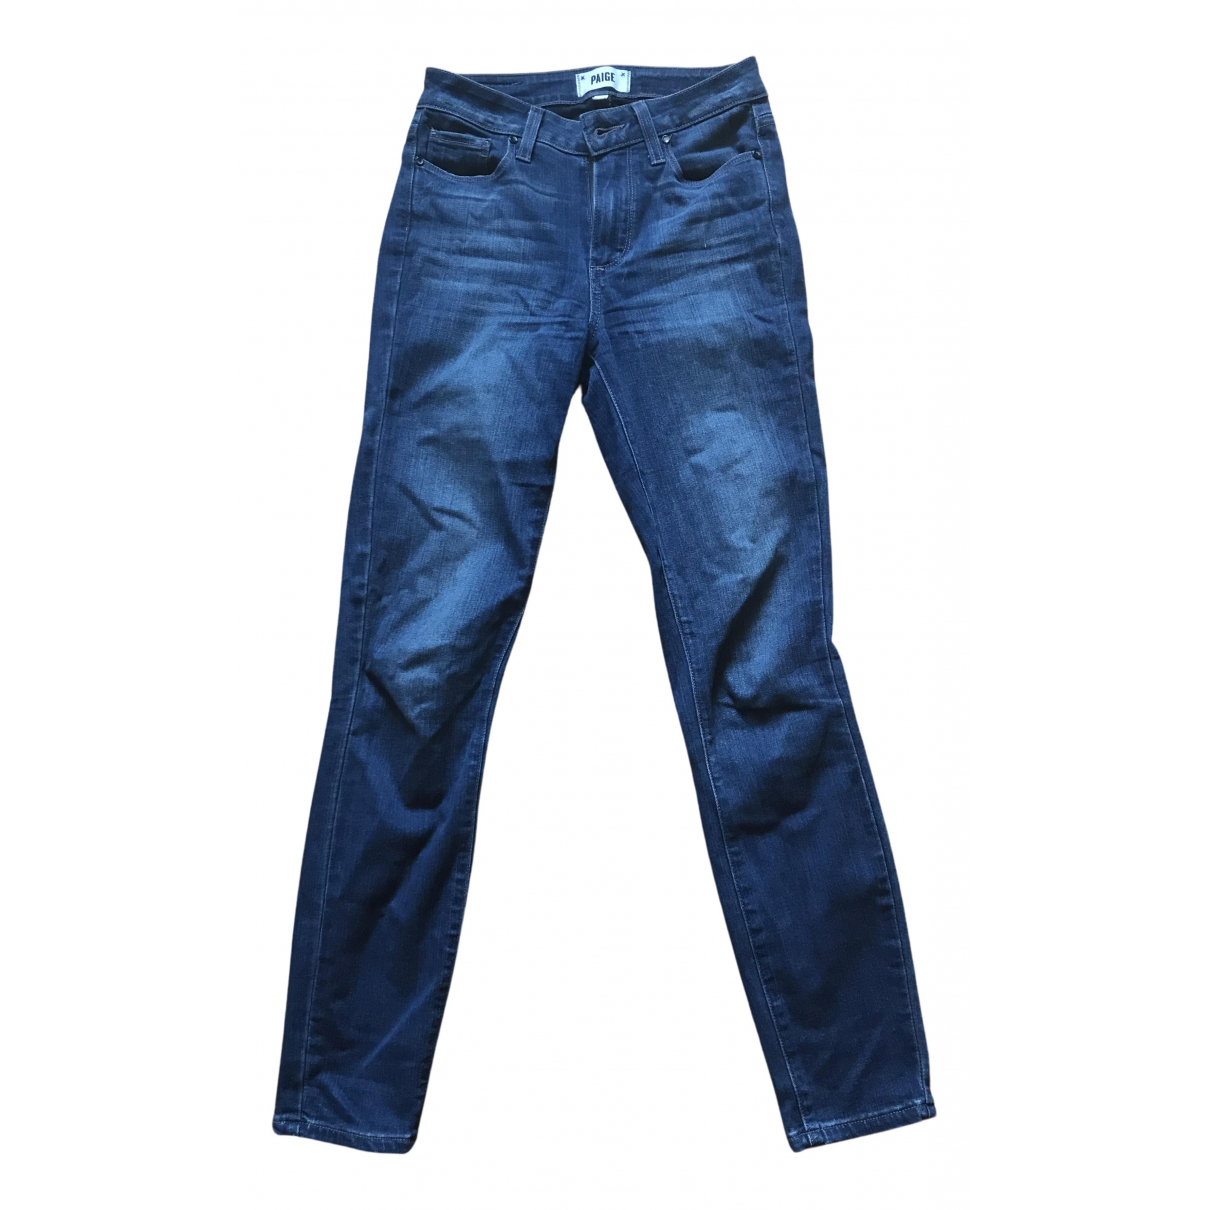 Paige Jeans N Navy Cotton - elasthane Jeans for Women 24 US